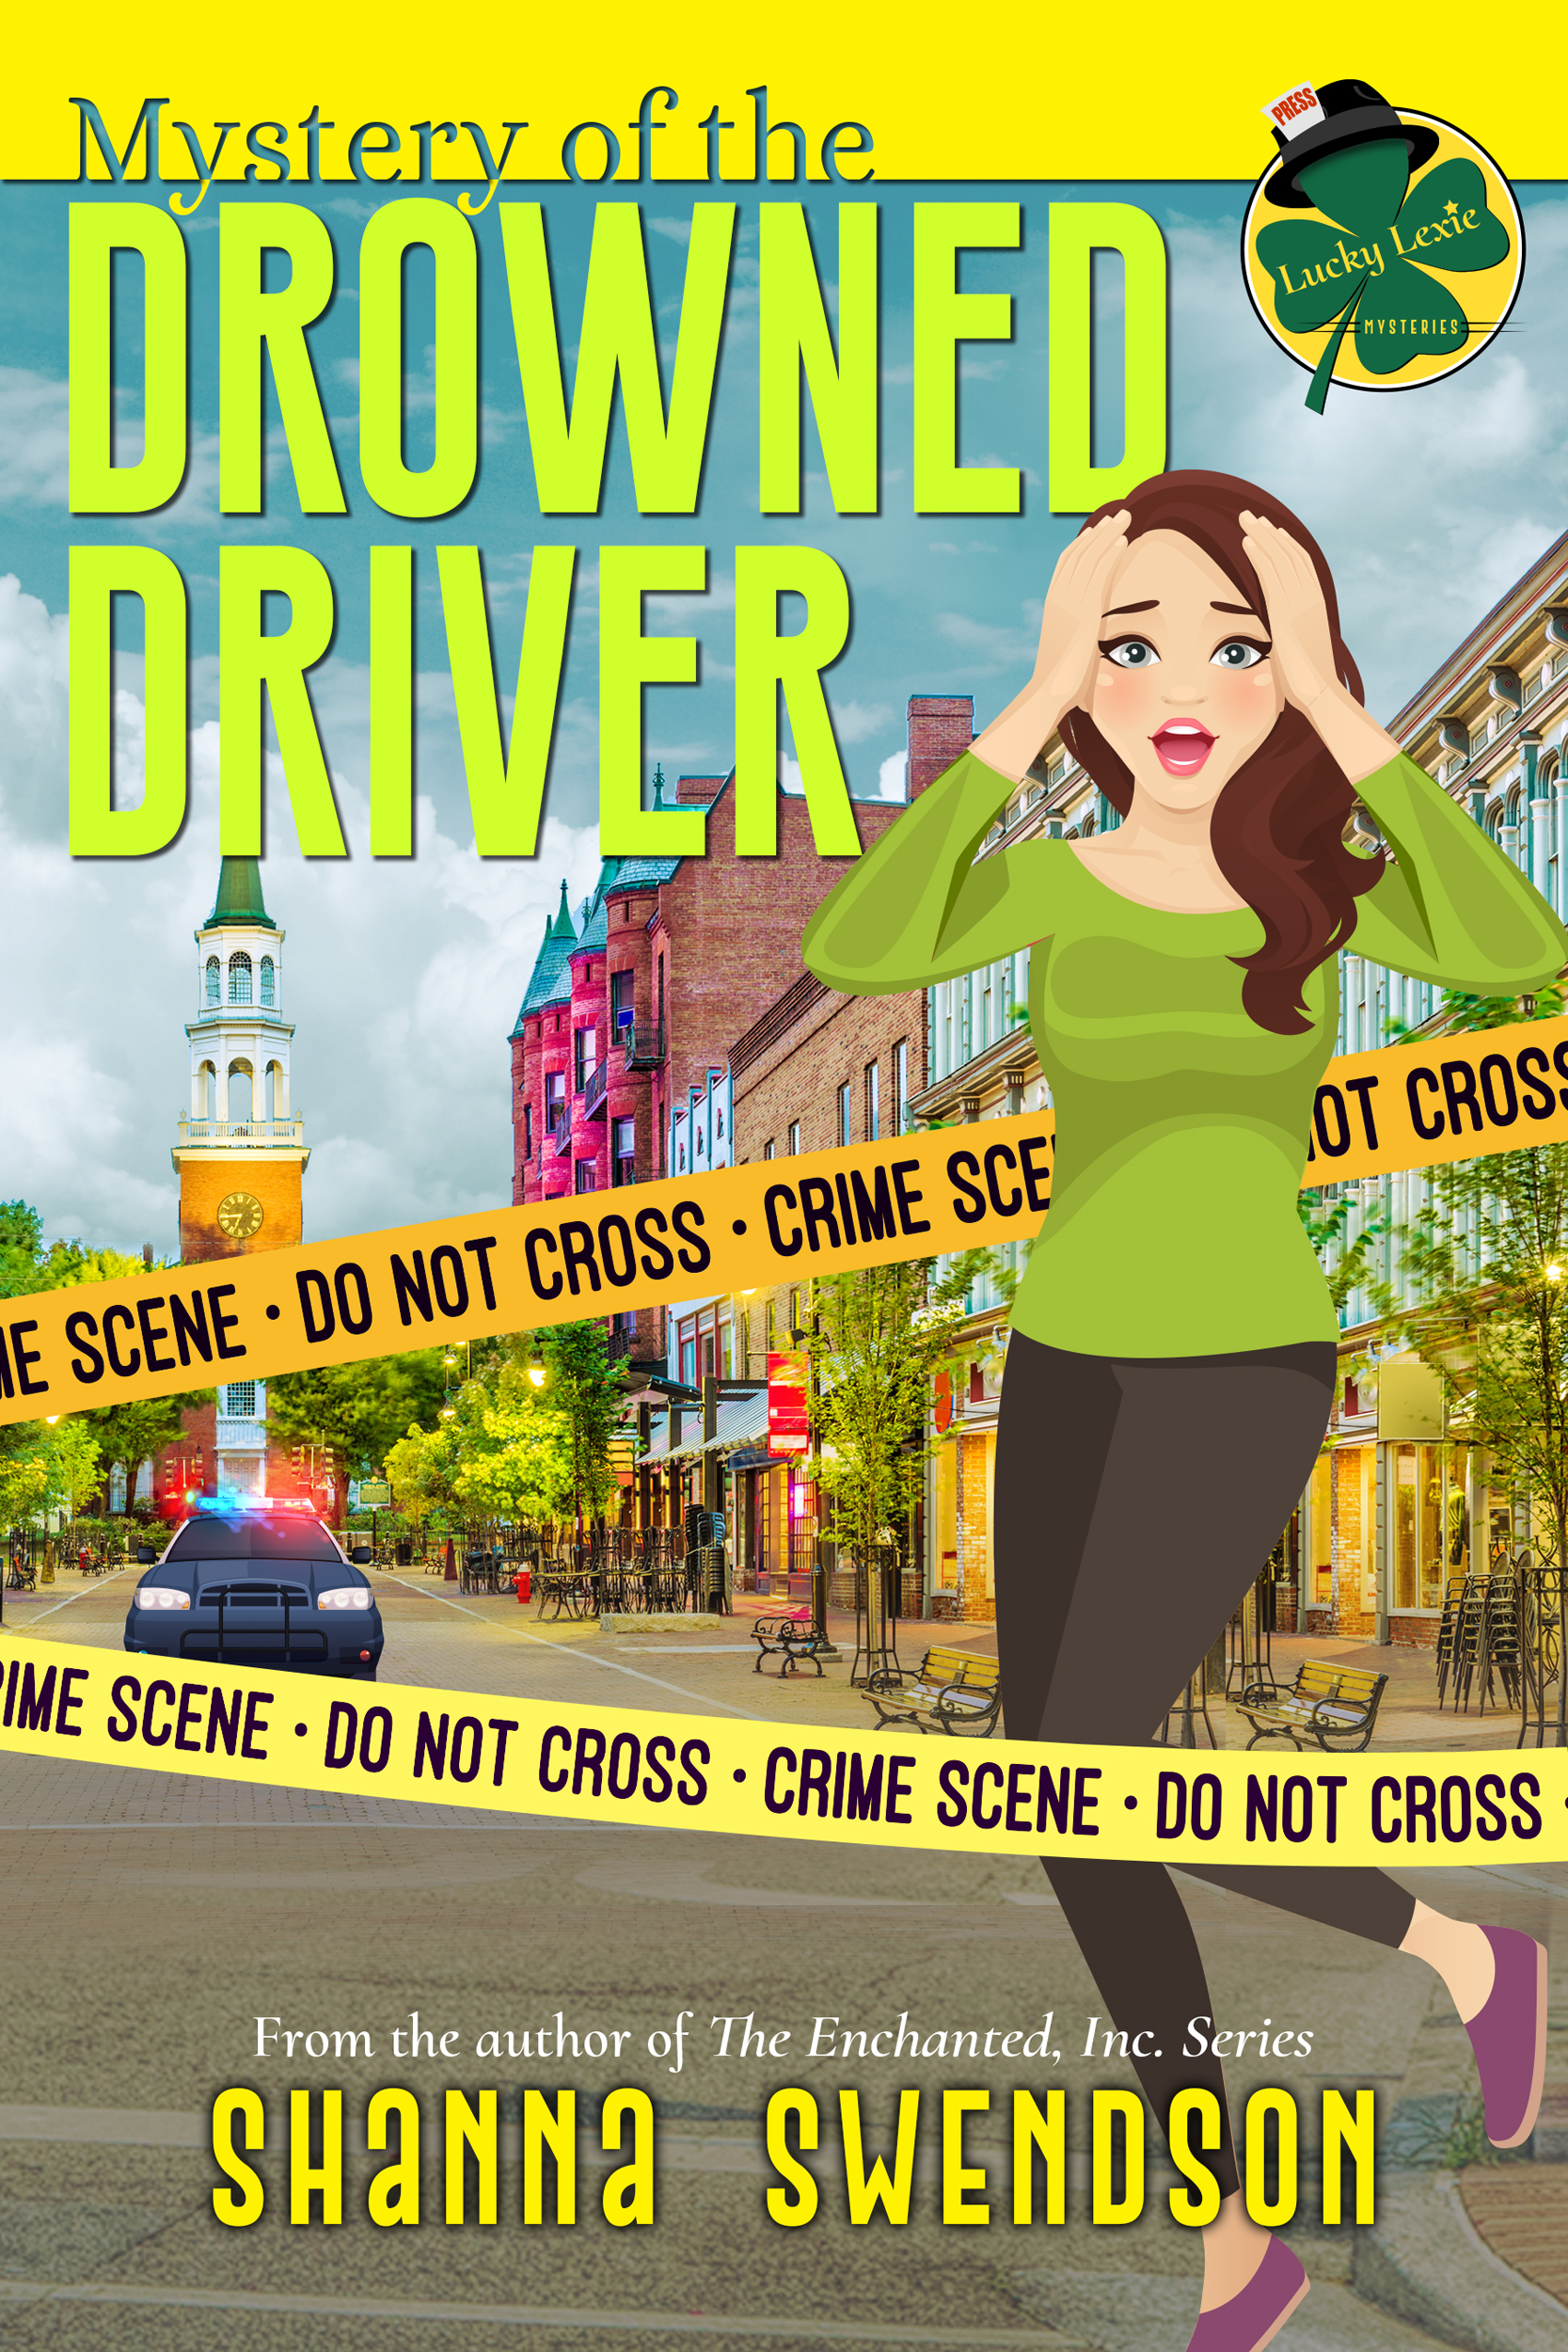 Mystery of the Drowned Driver Book Cover